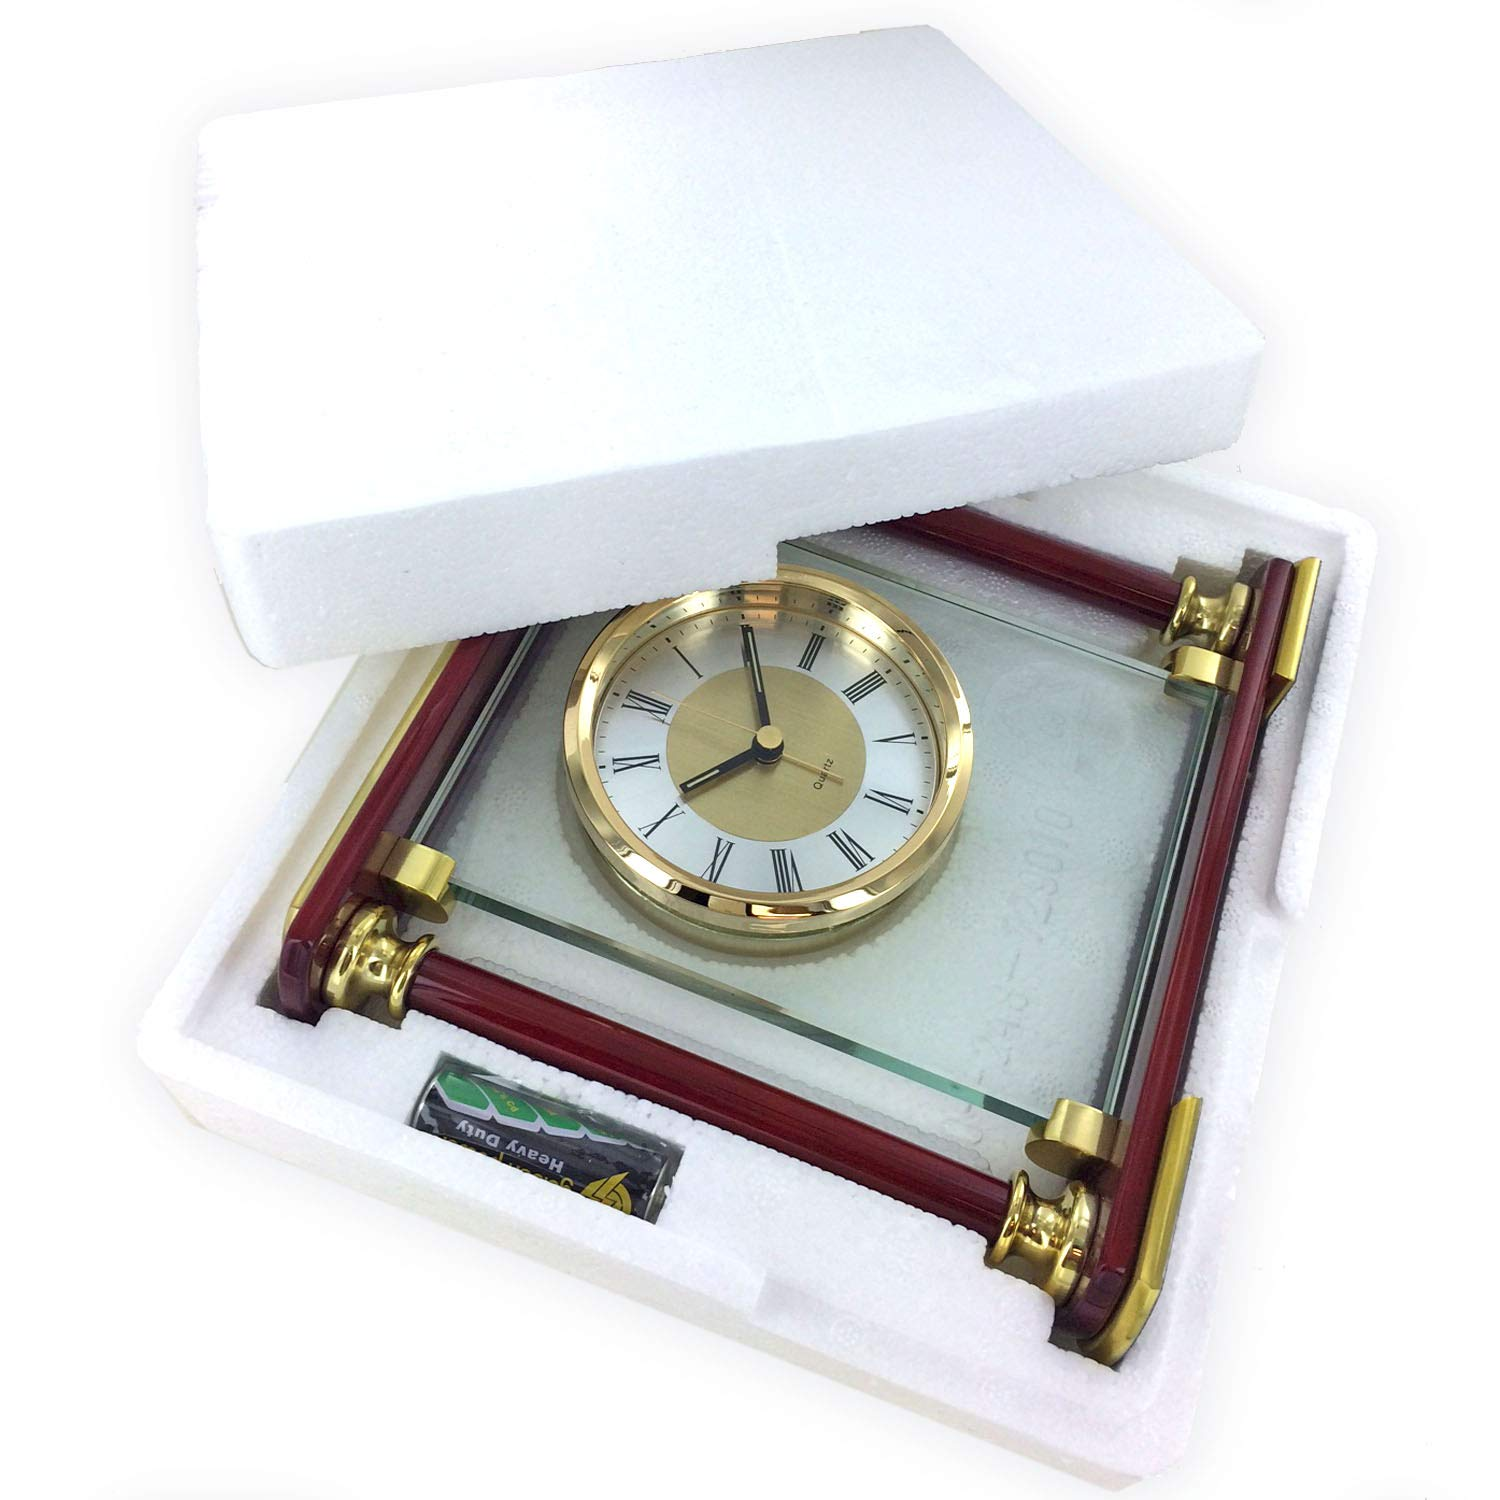 Mantel Quartz Alarm Clock in Piano Rosewood Finish and with Solid Brass Trim Awards And Gifts R Us GF5417